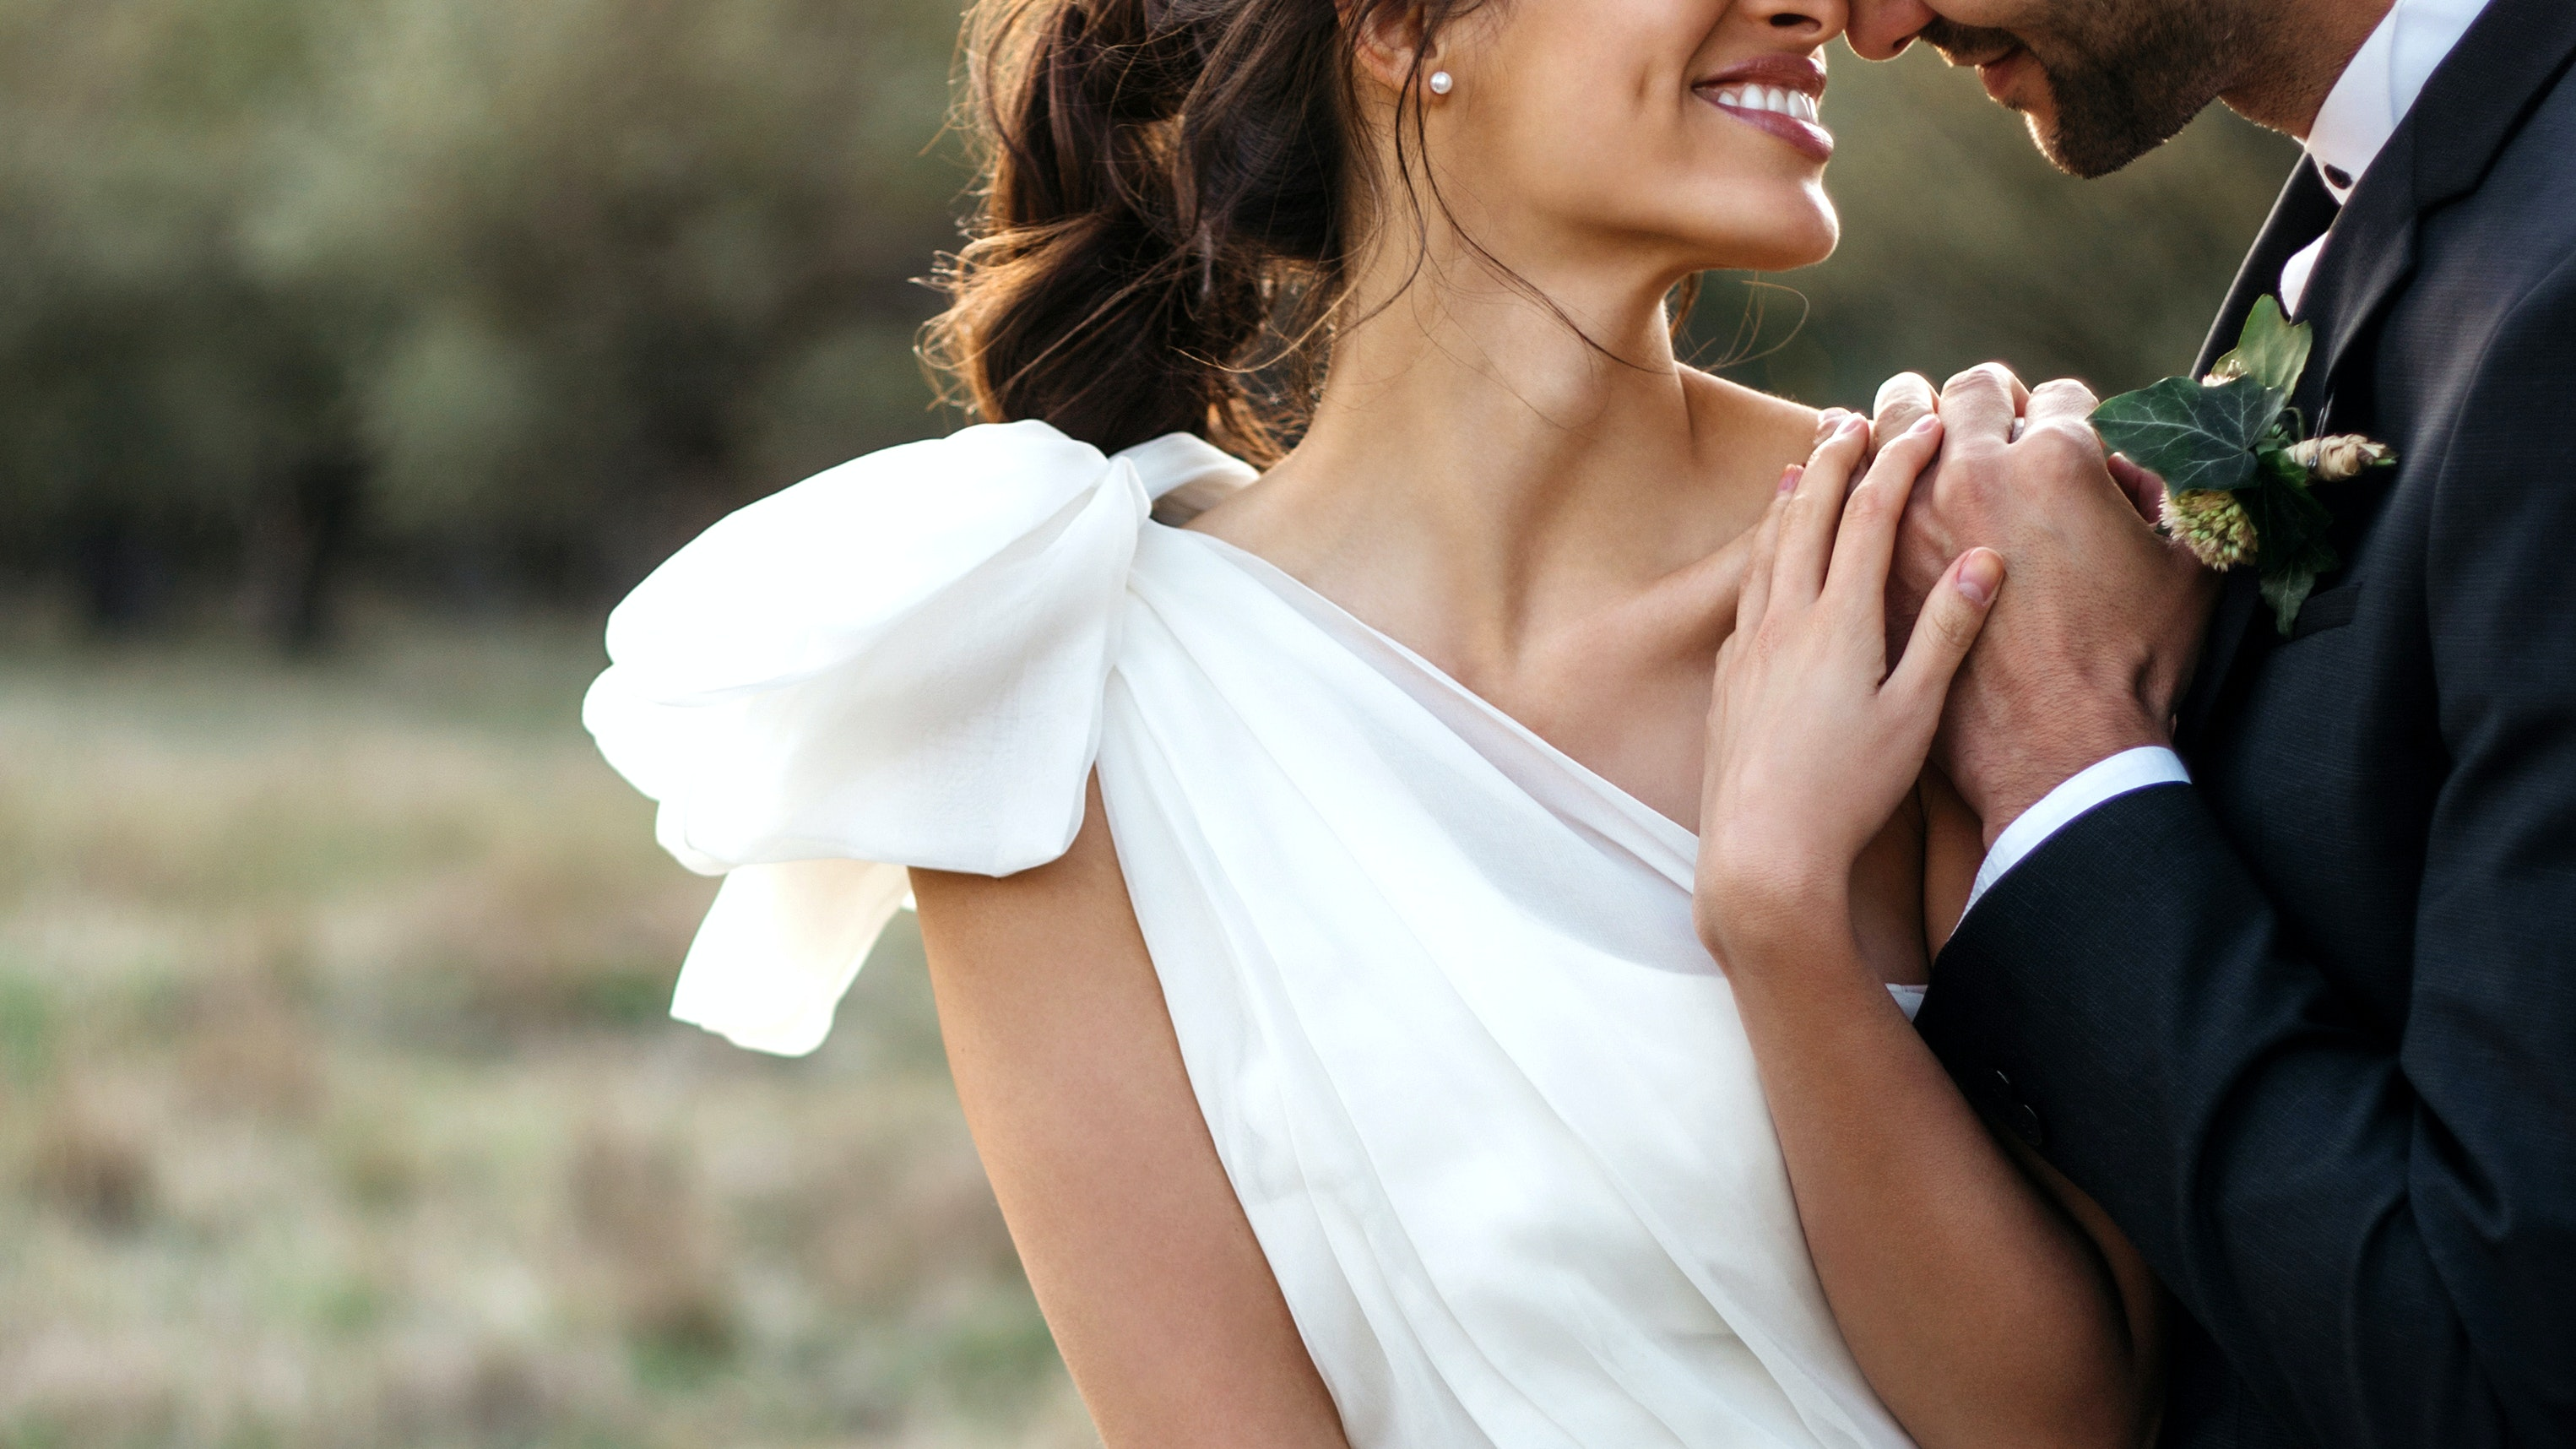 coolsculpting reviews from brides before wedding day